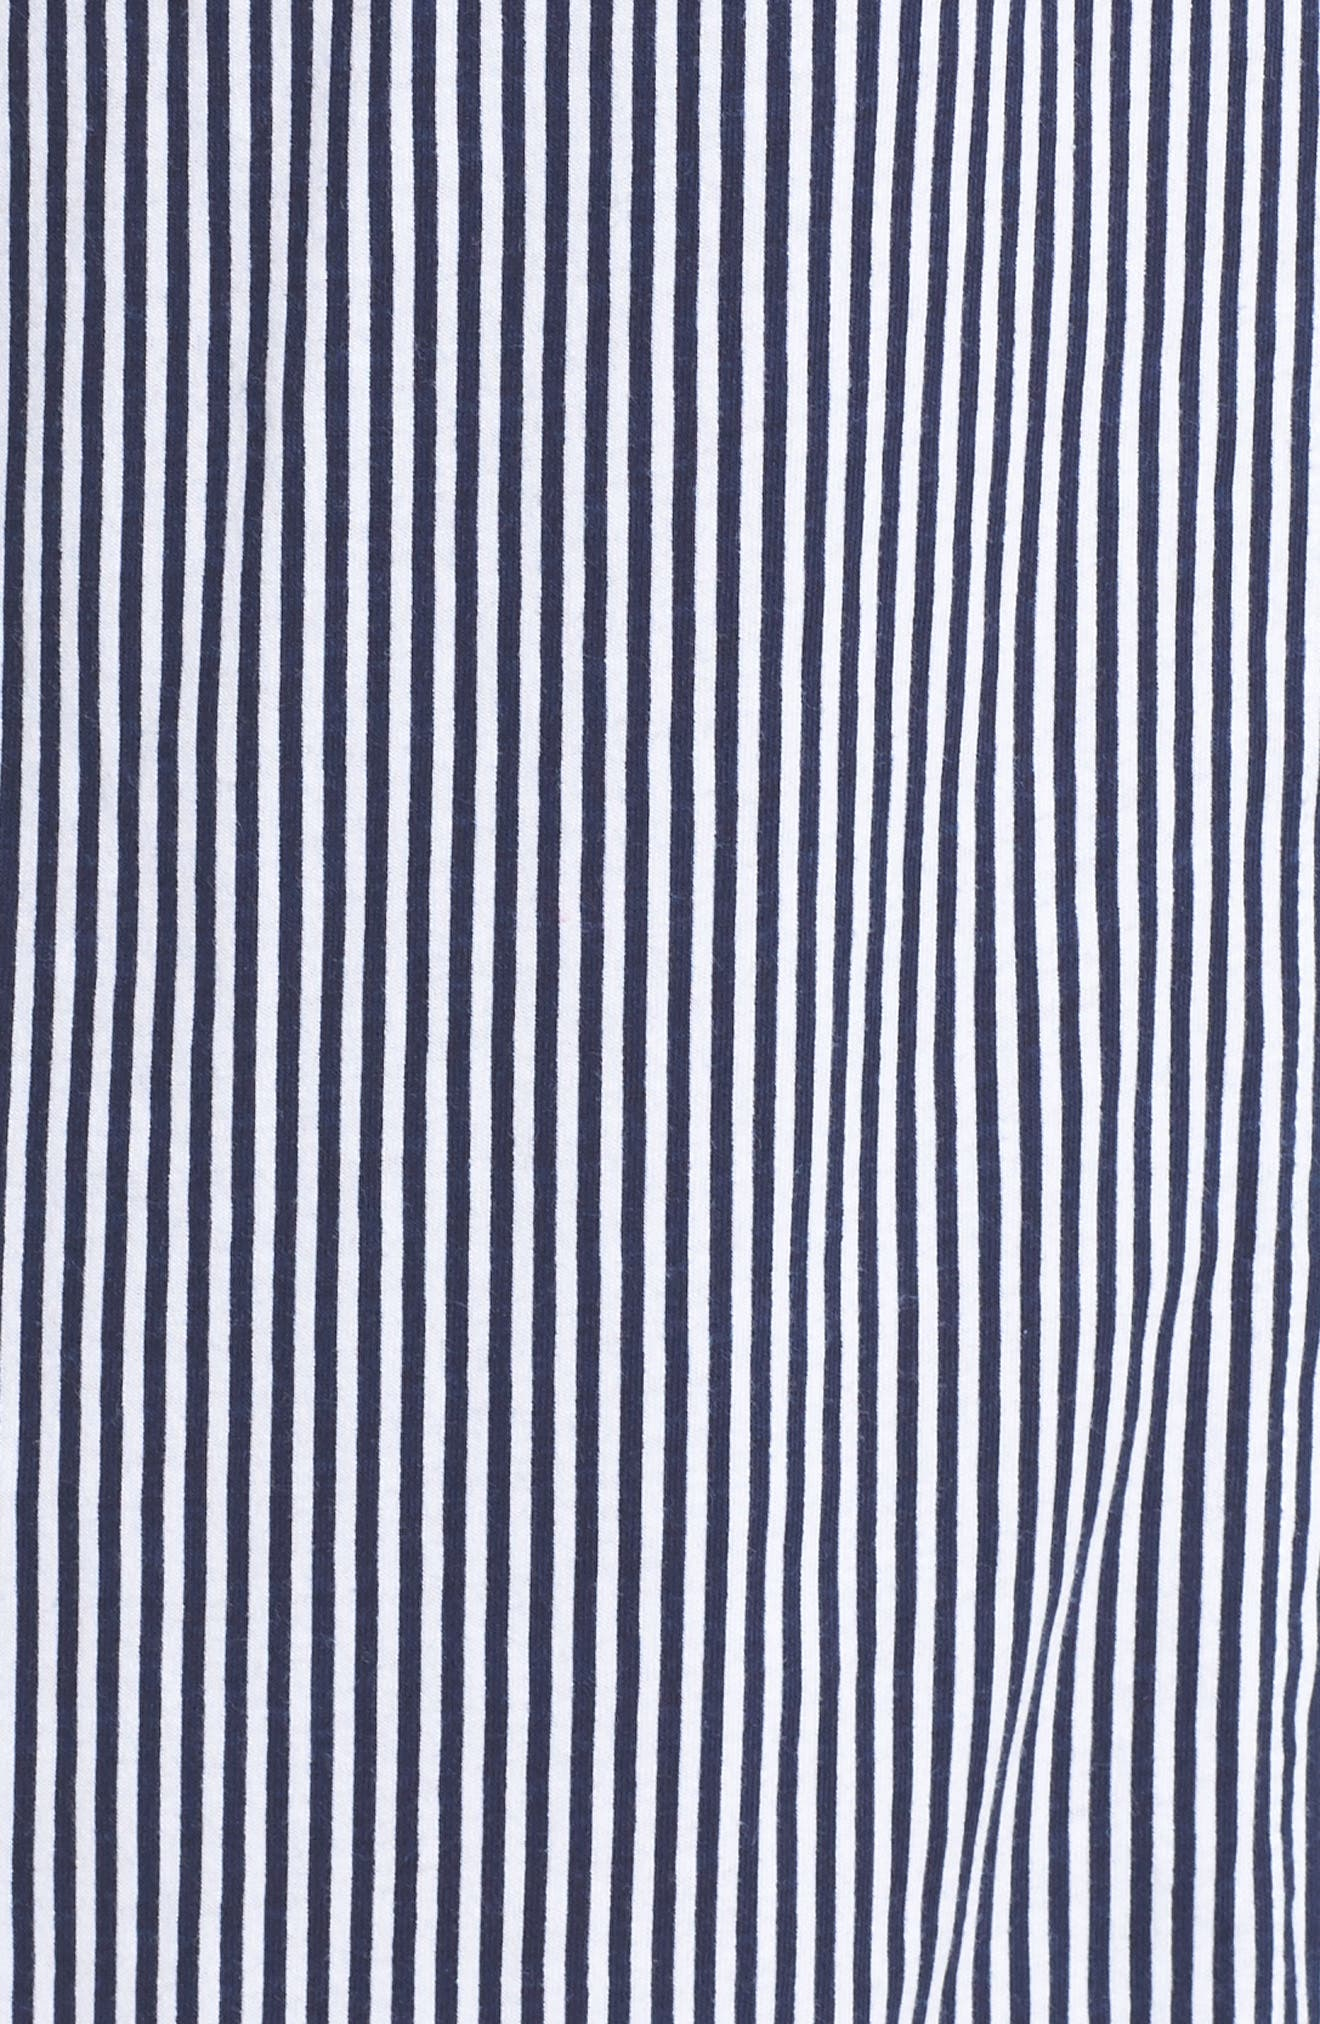 Jersey Sleep Shirt,                             Alternate thumbnail 4, color,                             Windsor Navy/ White Stripe